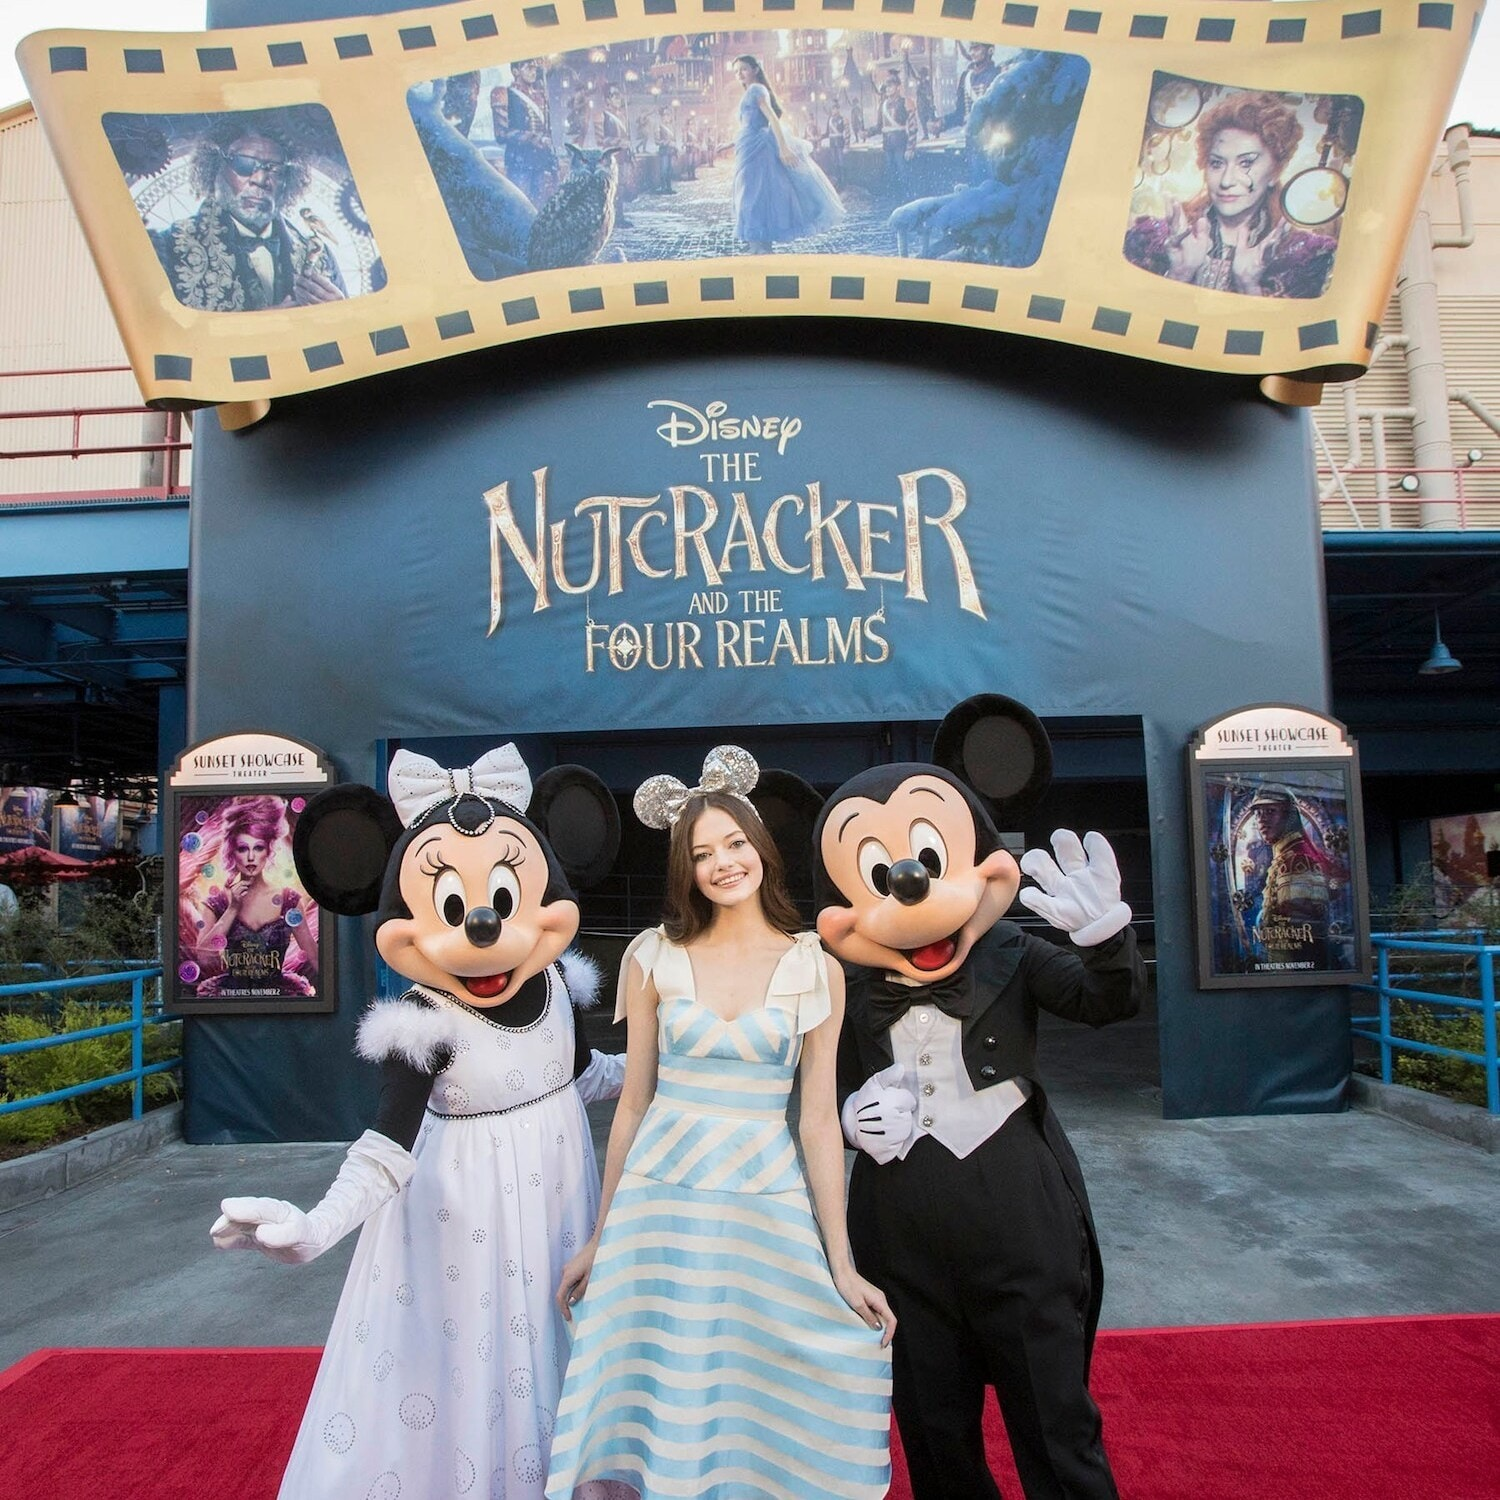 The Nutcracker and The Four Realms' Mackenzie Foy Surprised Annual Passholders at the Disneyland Resort and We Can't Wait For This Movie